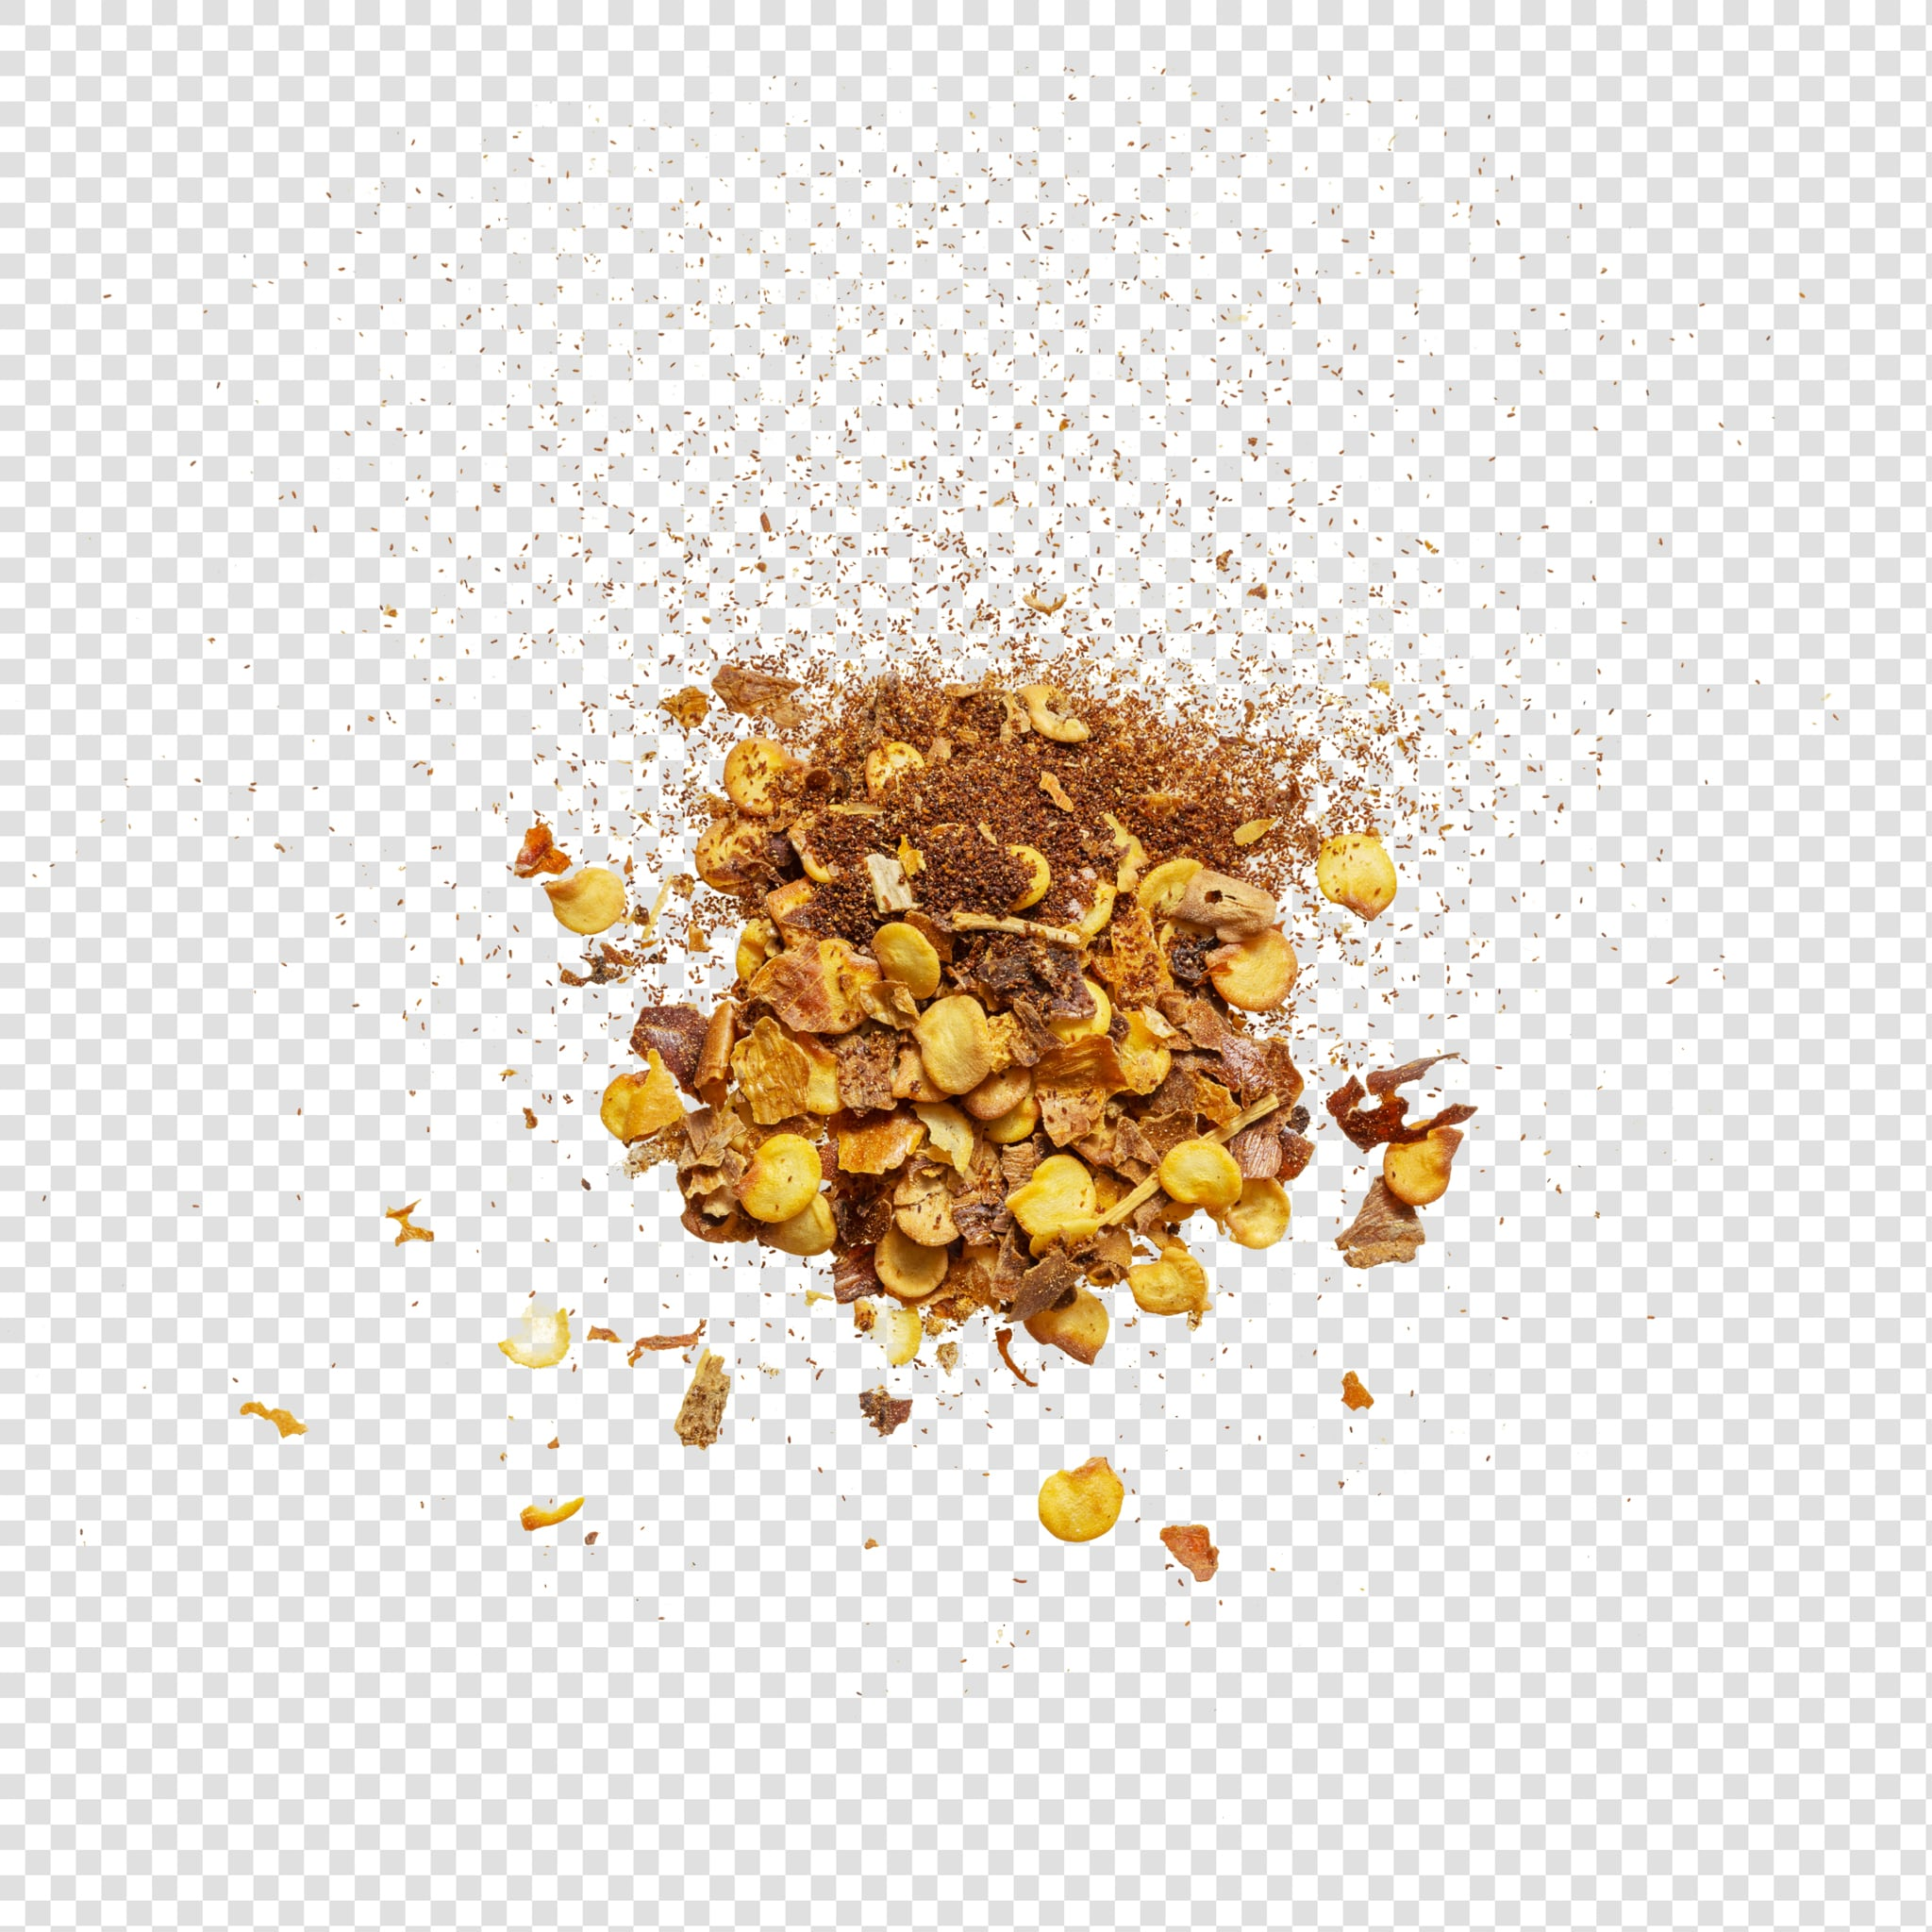 Isolated Spice psd image